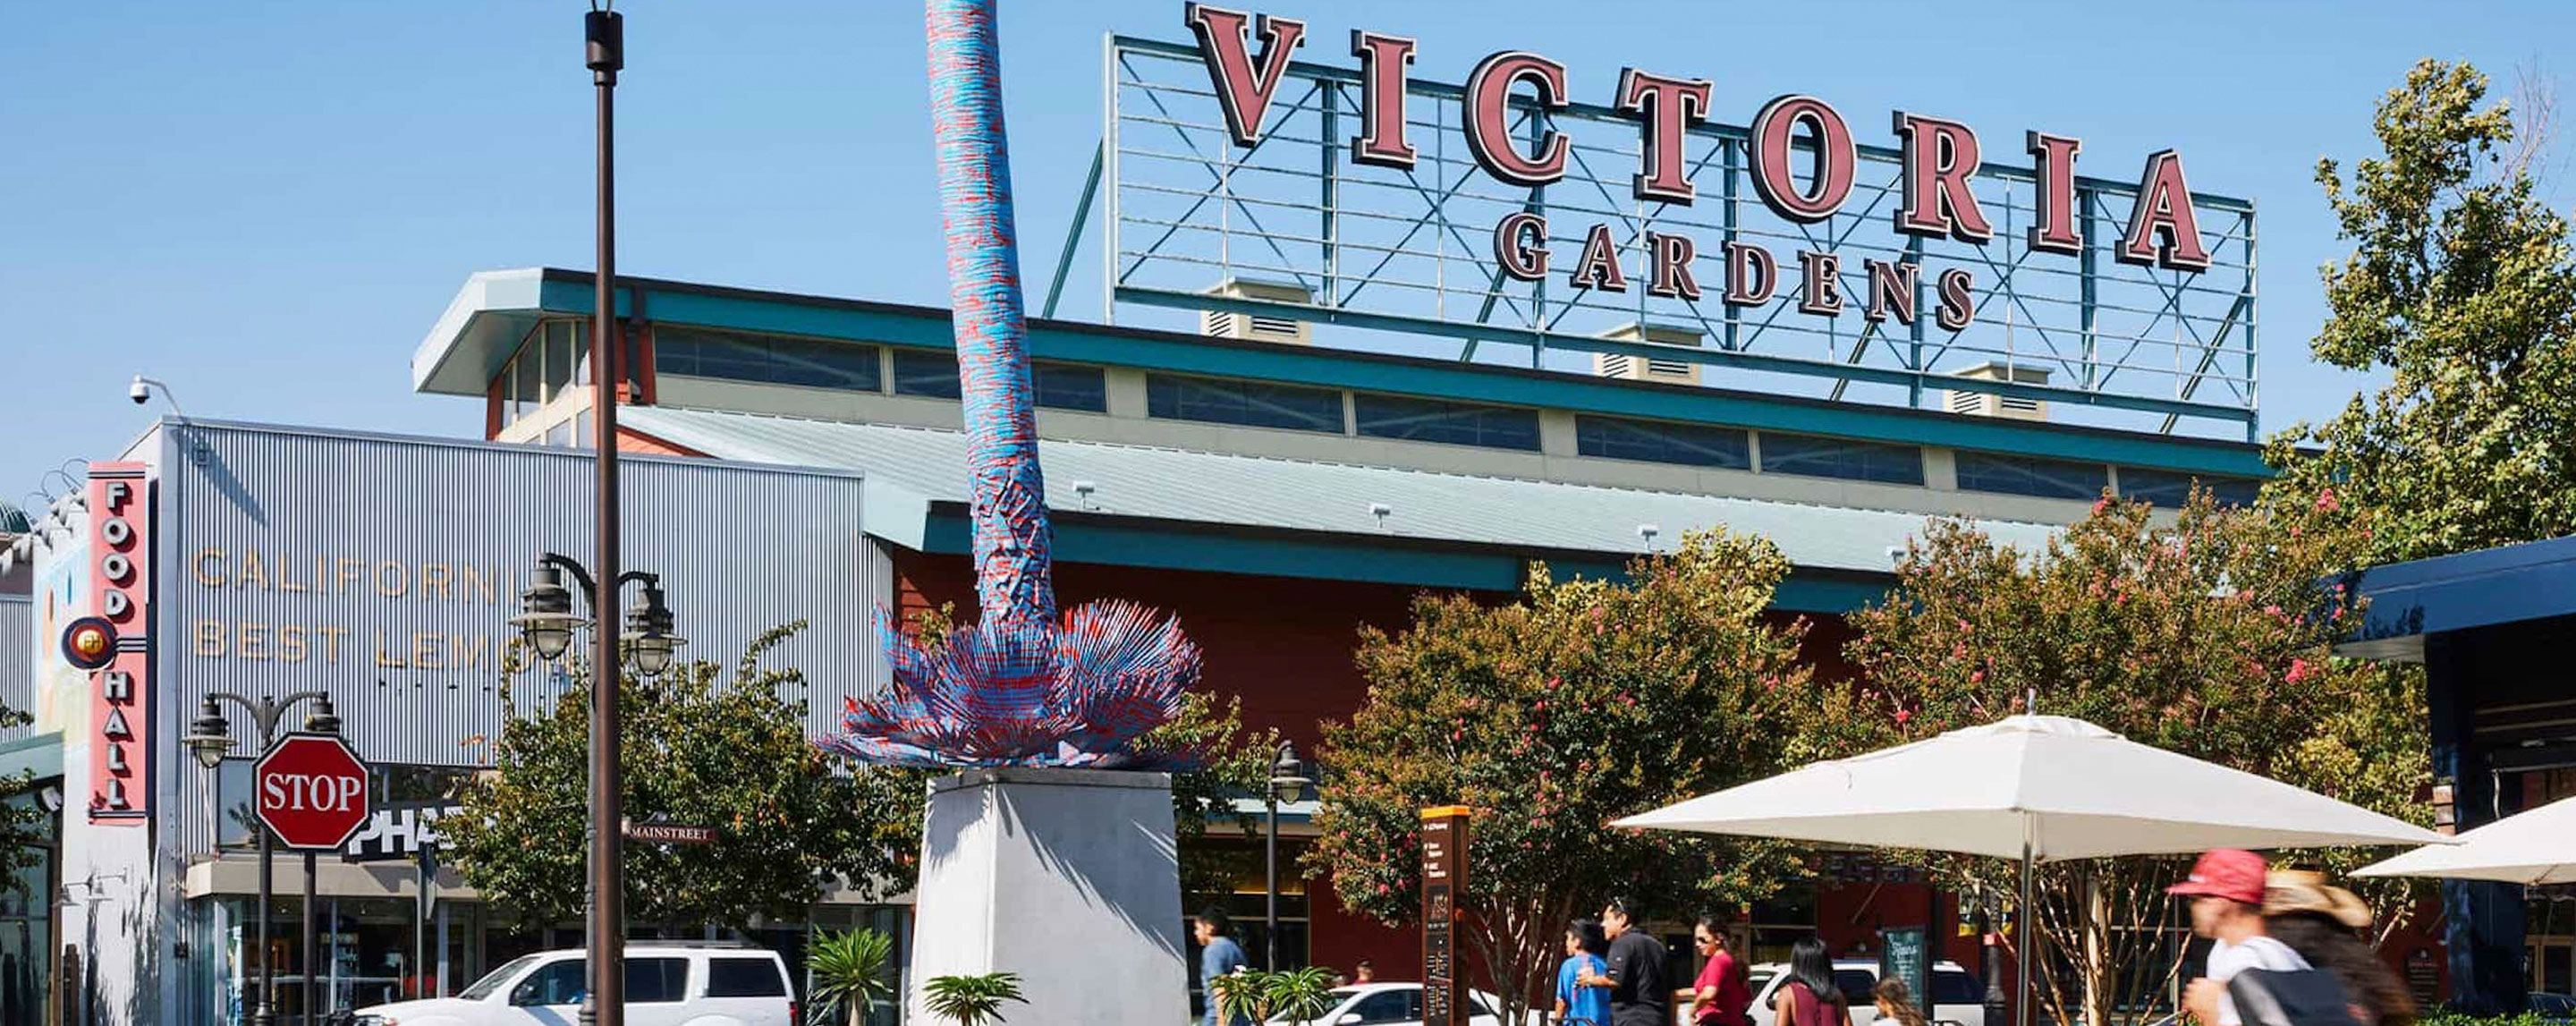 "A large red sign that reads ""Victoria Gardens"" stands above a large commercial building."